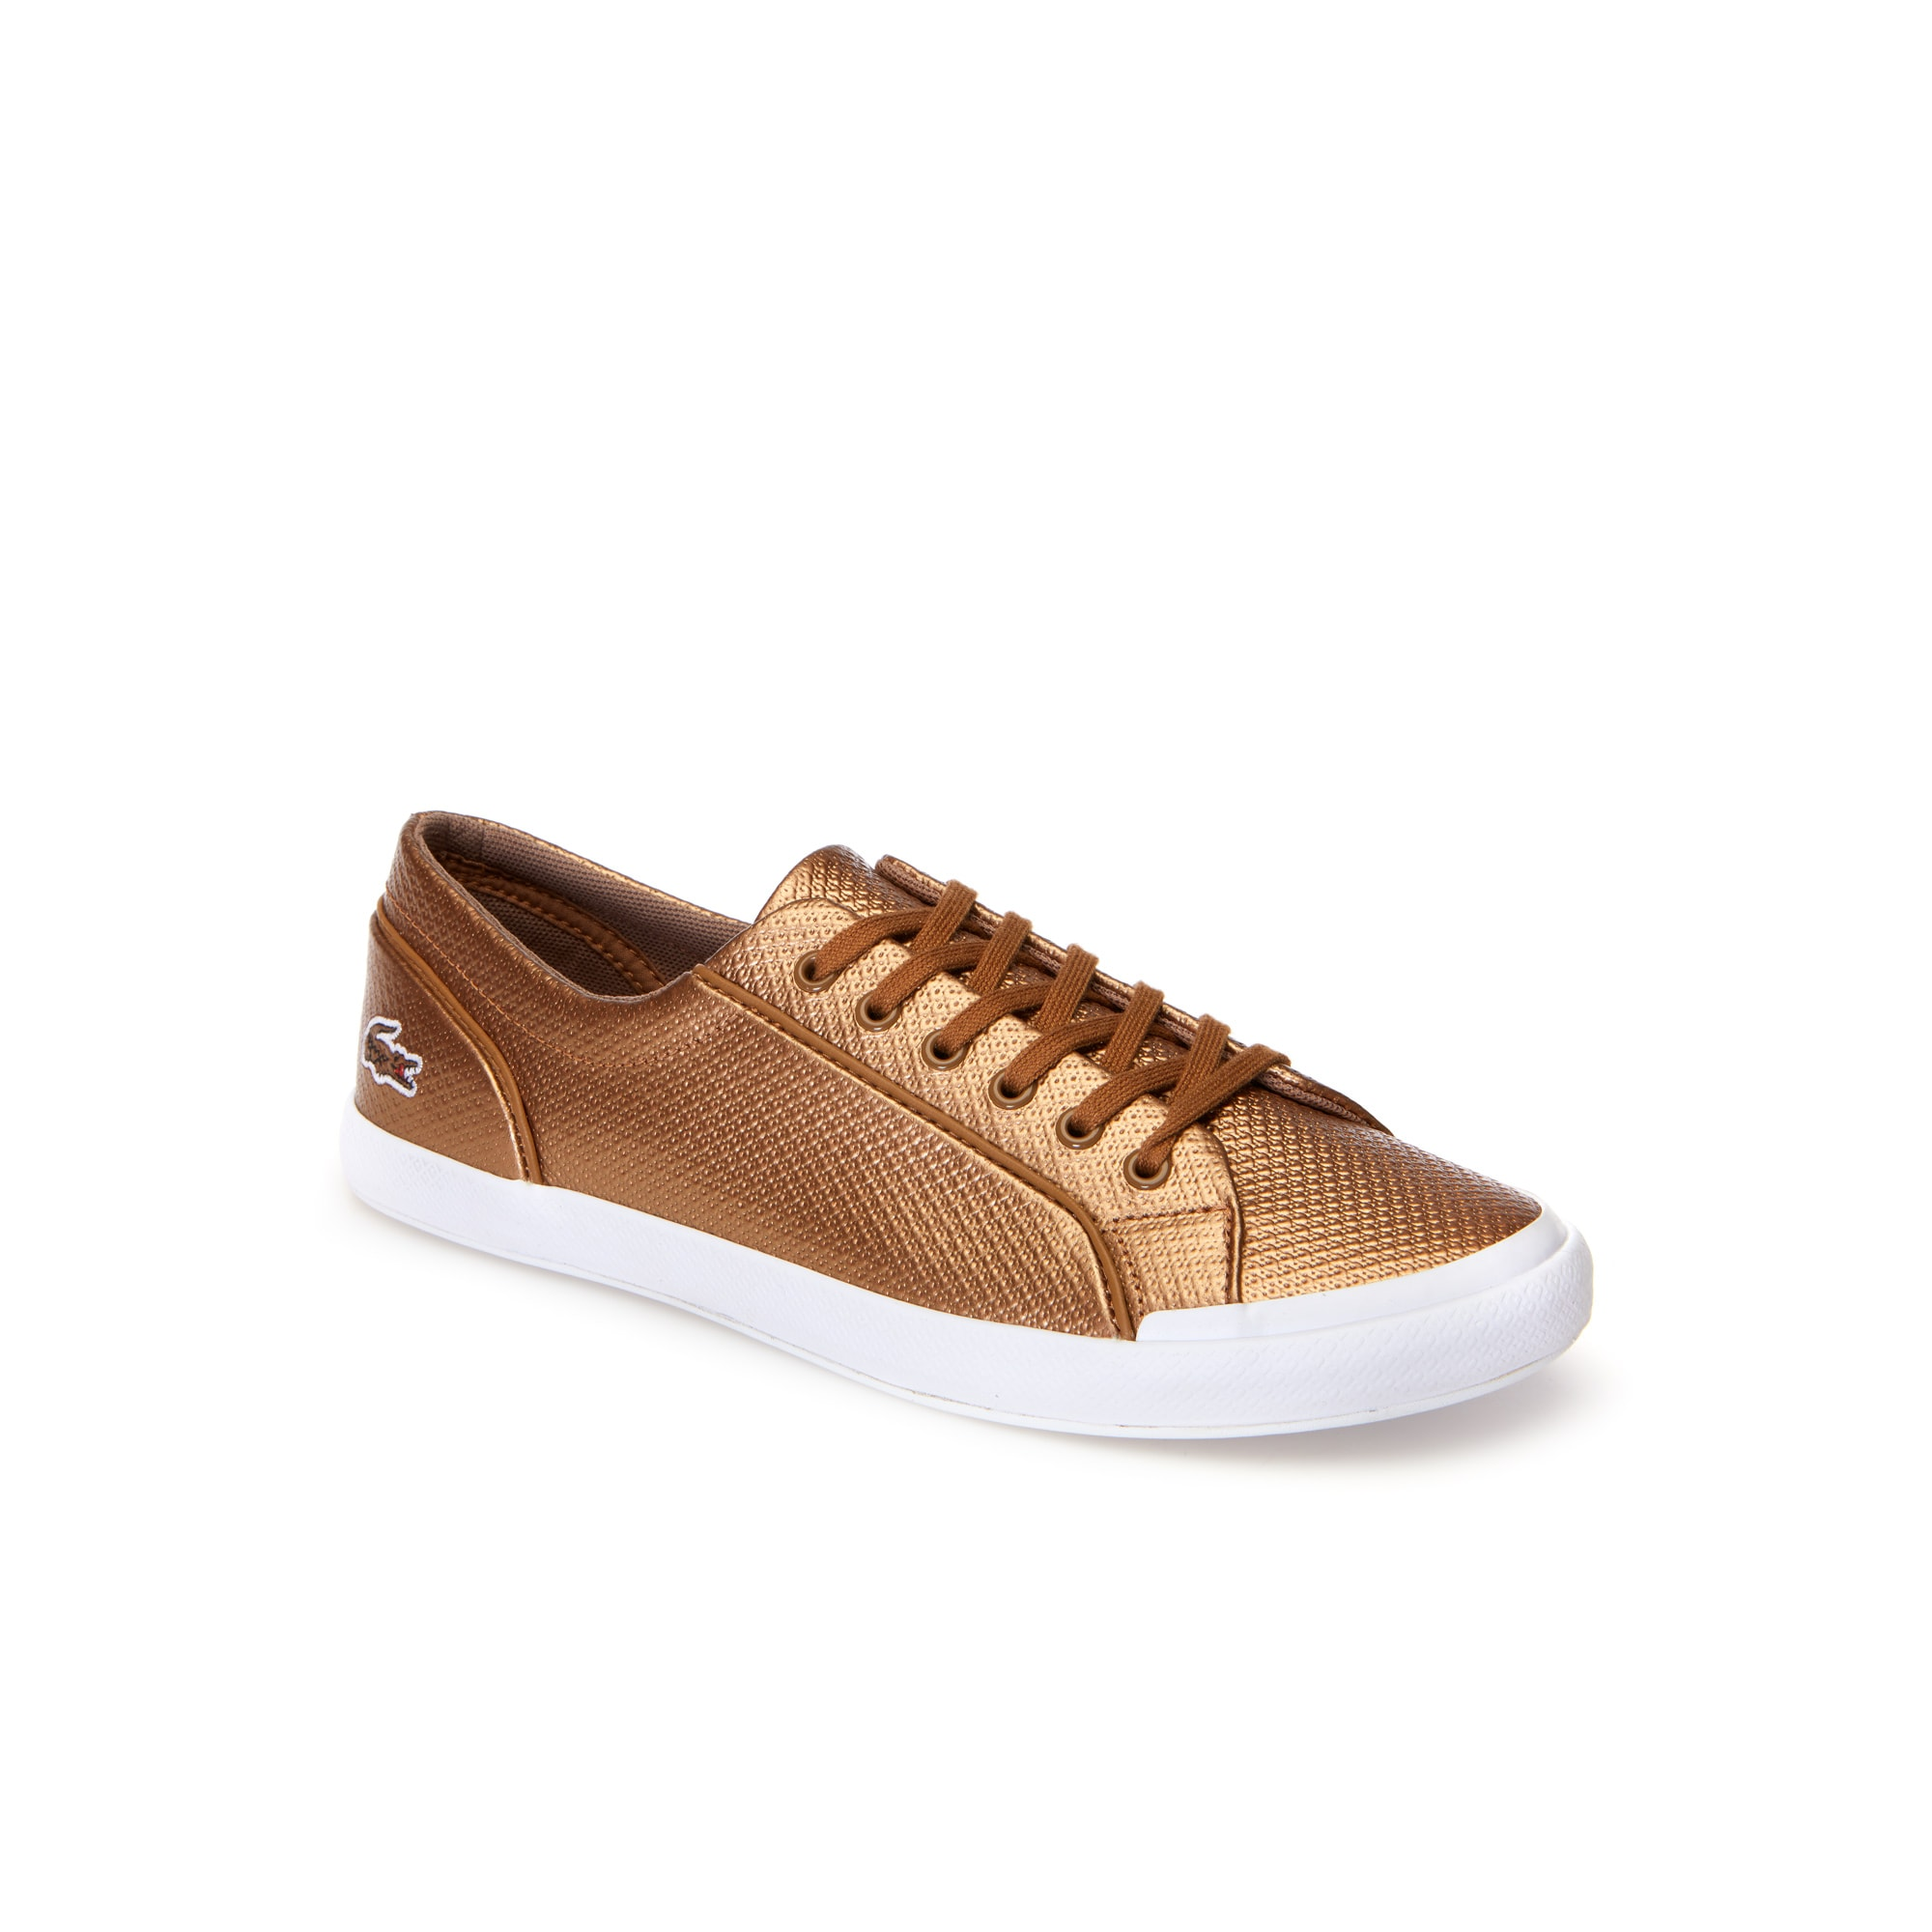 Femme Chaussures Collection Lacoste Chaussures Femme Collection Lacoste 1Xqw6FxF